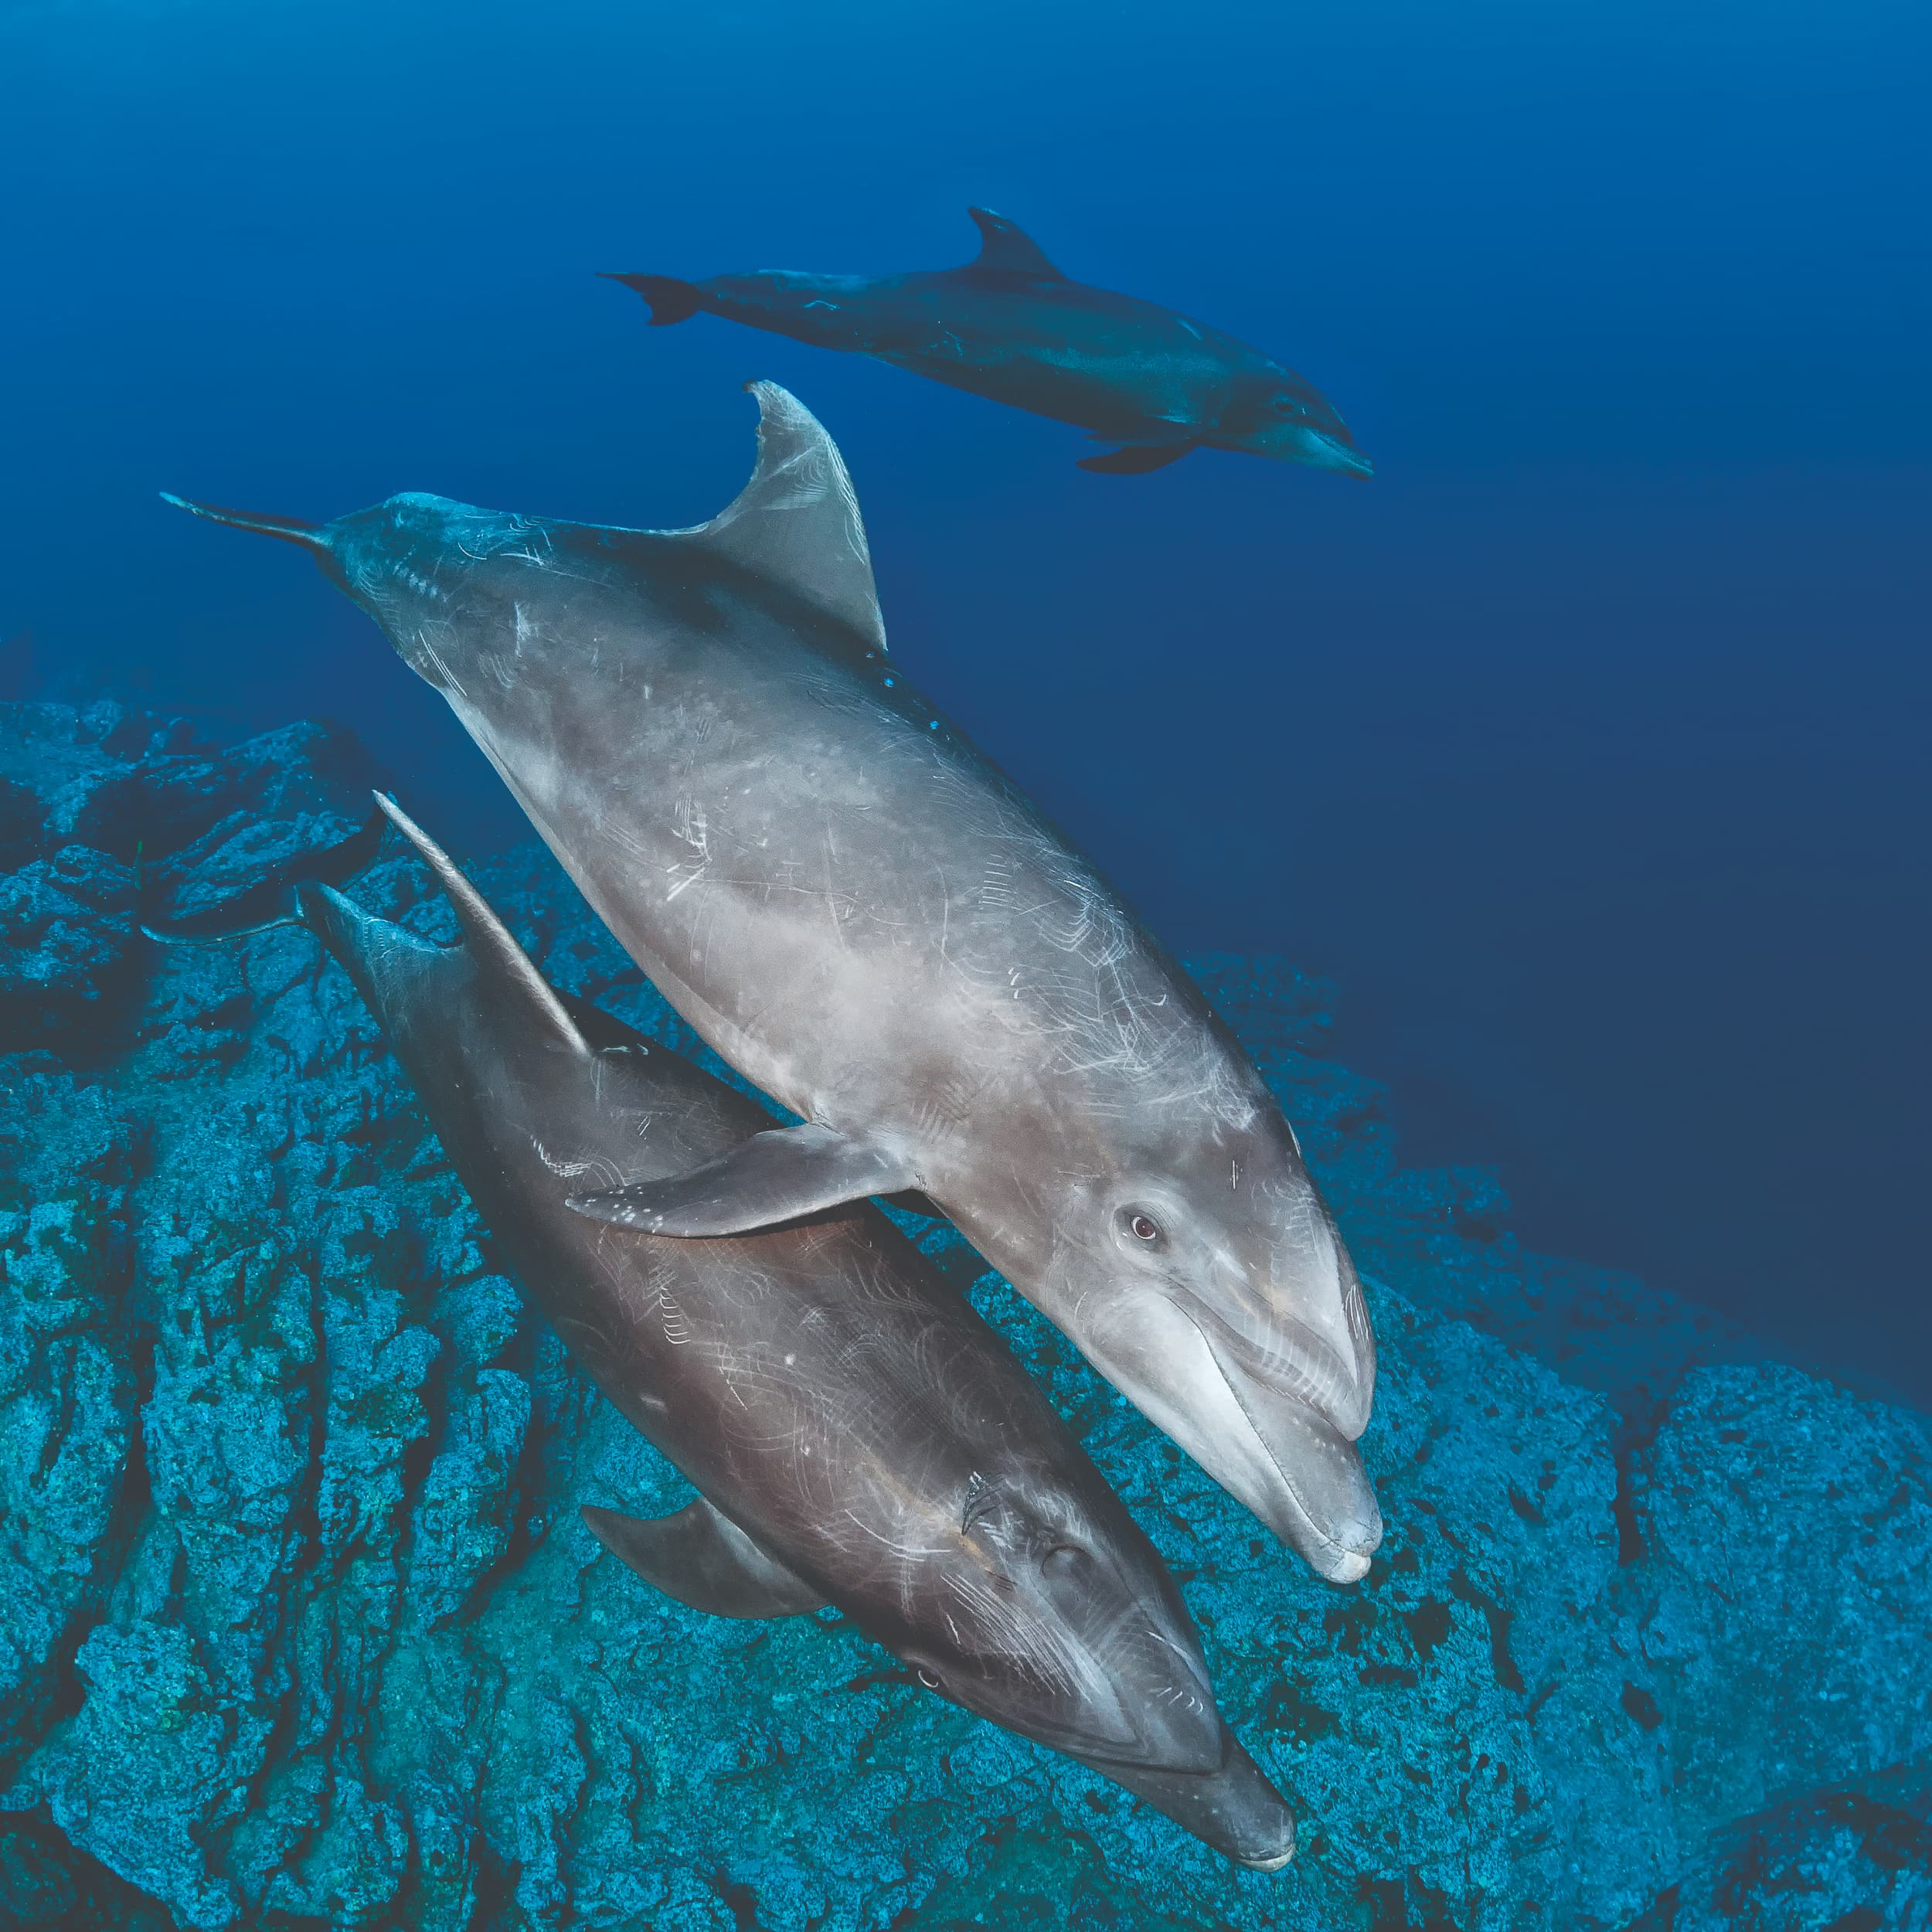 Bottlenose dolphins at Cabo Pearce